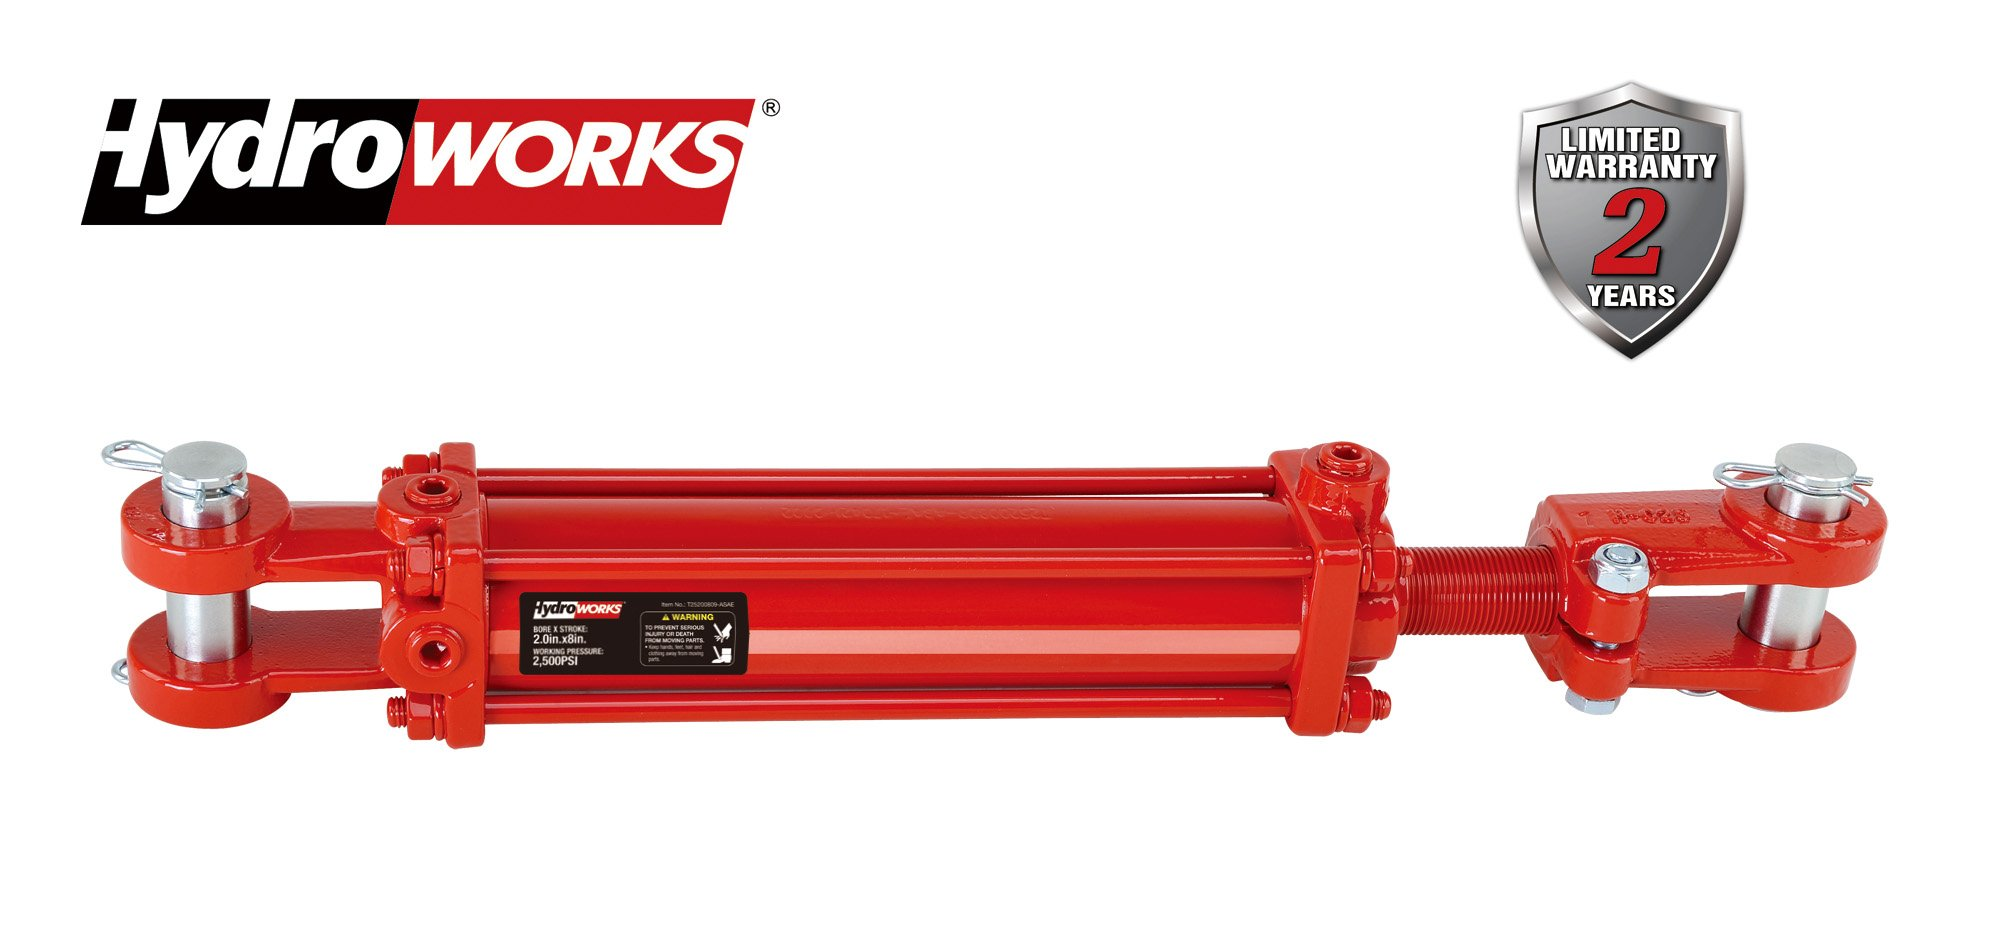 HYDROWORKS Double Acting Tie Rod Hydraulic Cylinder, 2500 PSI (2.5'' Bore/ 8'' Stroke - ASAE)